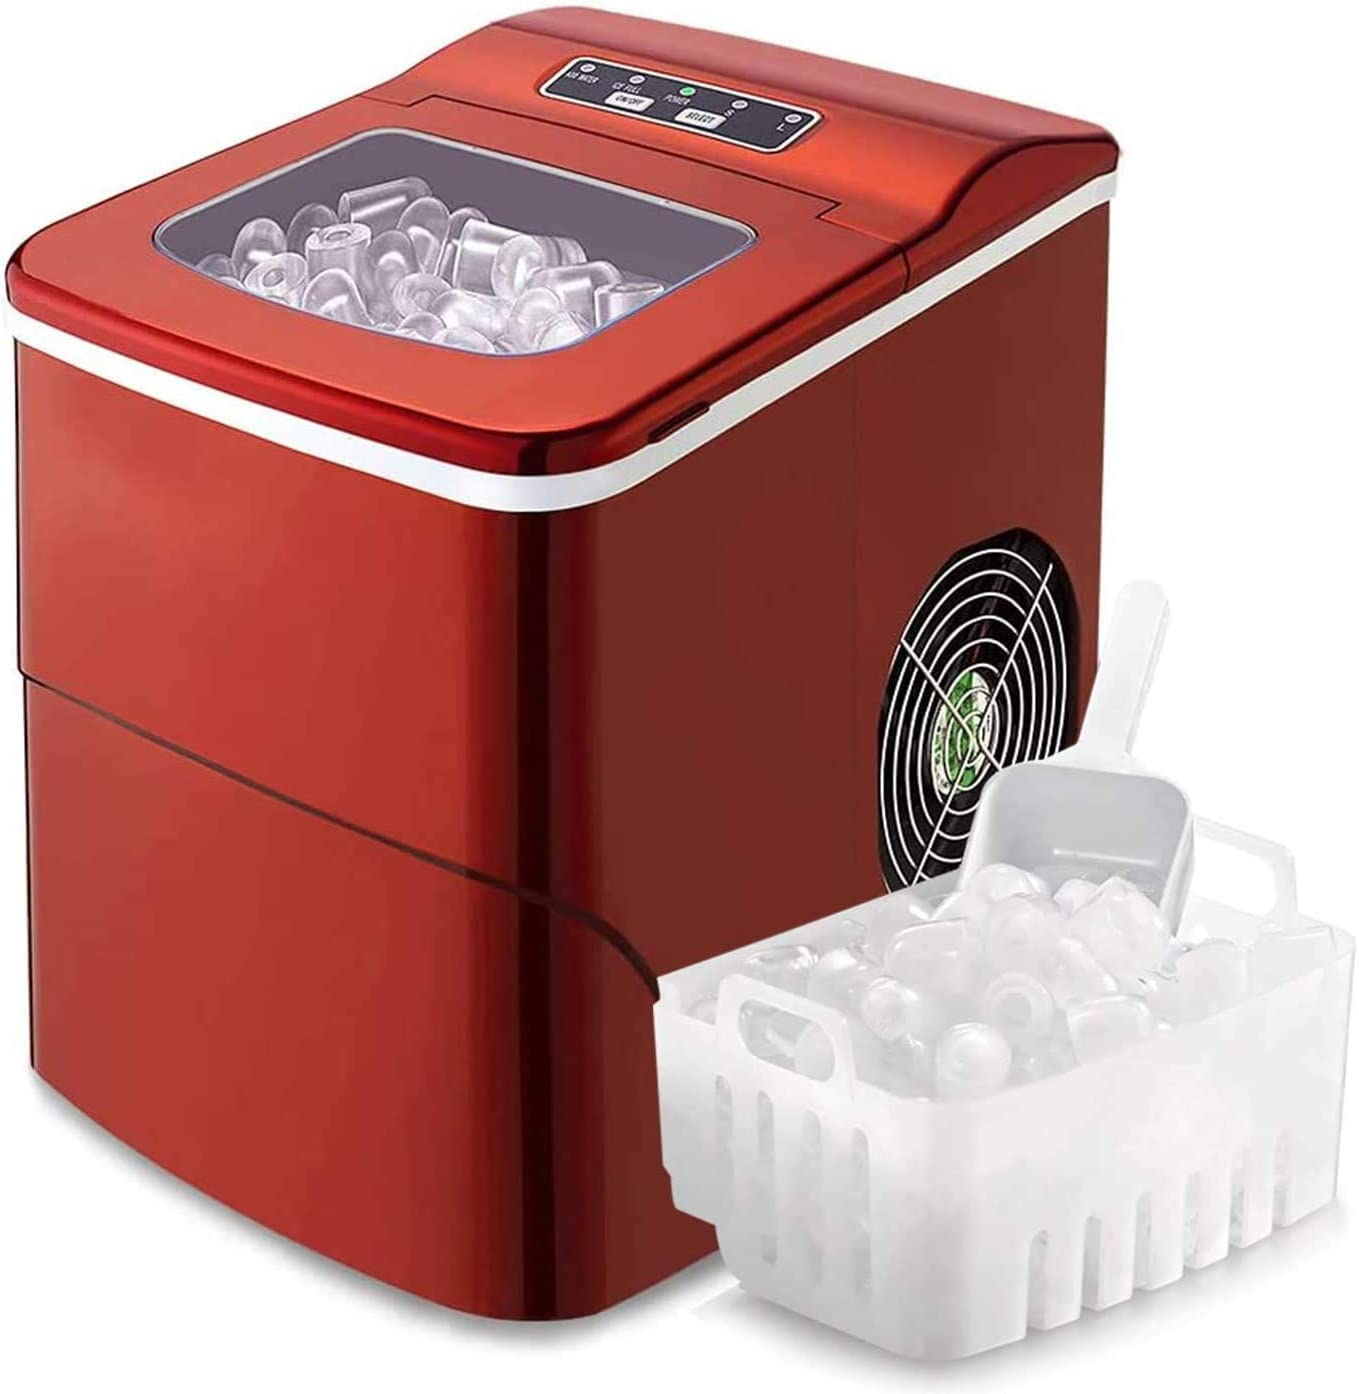 WUAZ Ice Maker,Portable Automatic 9 Ice Cubes Ready in 8 Minutes,Makes 15Kg of Ice Per 24 Hours,Self-Clean,See-Through Lid for Home/Bar/Party